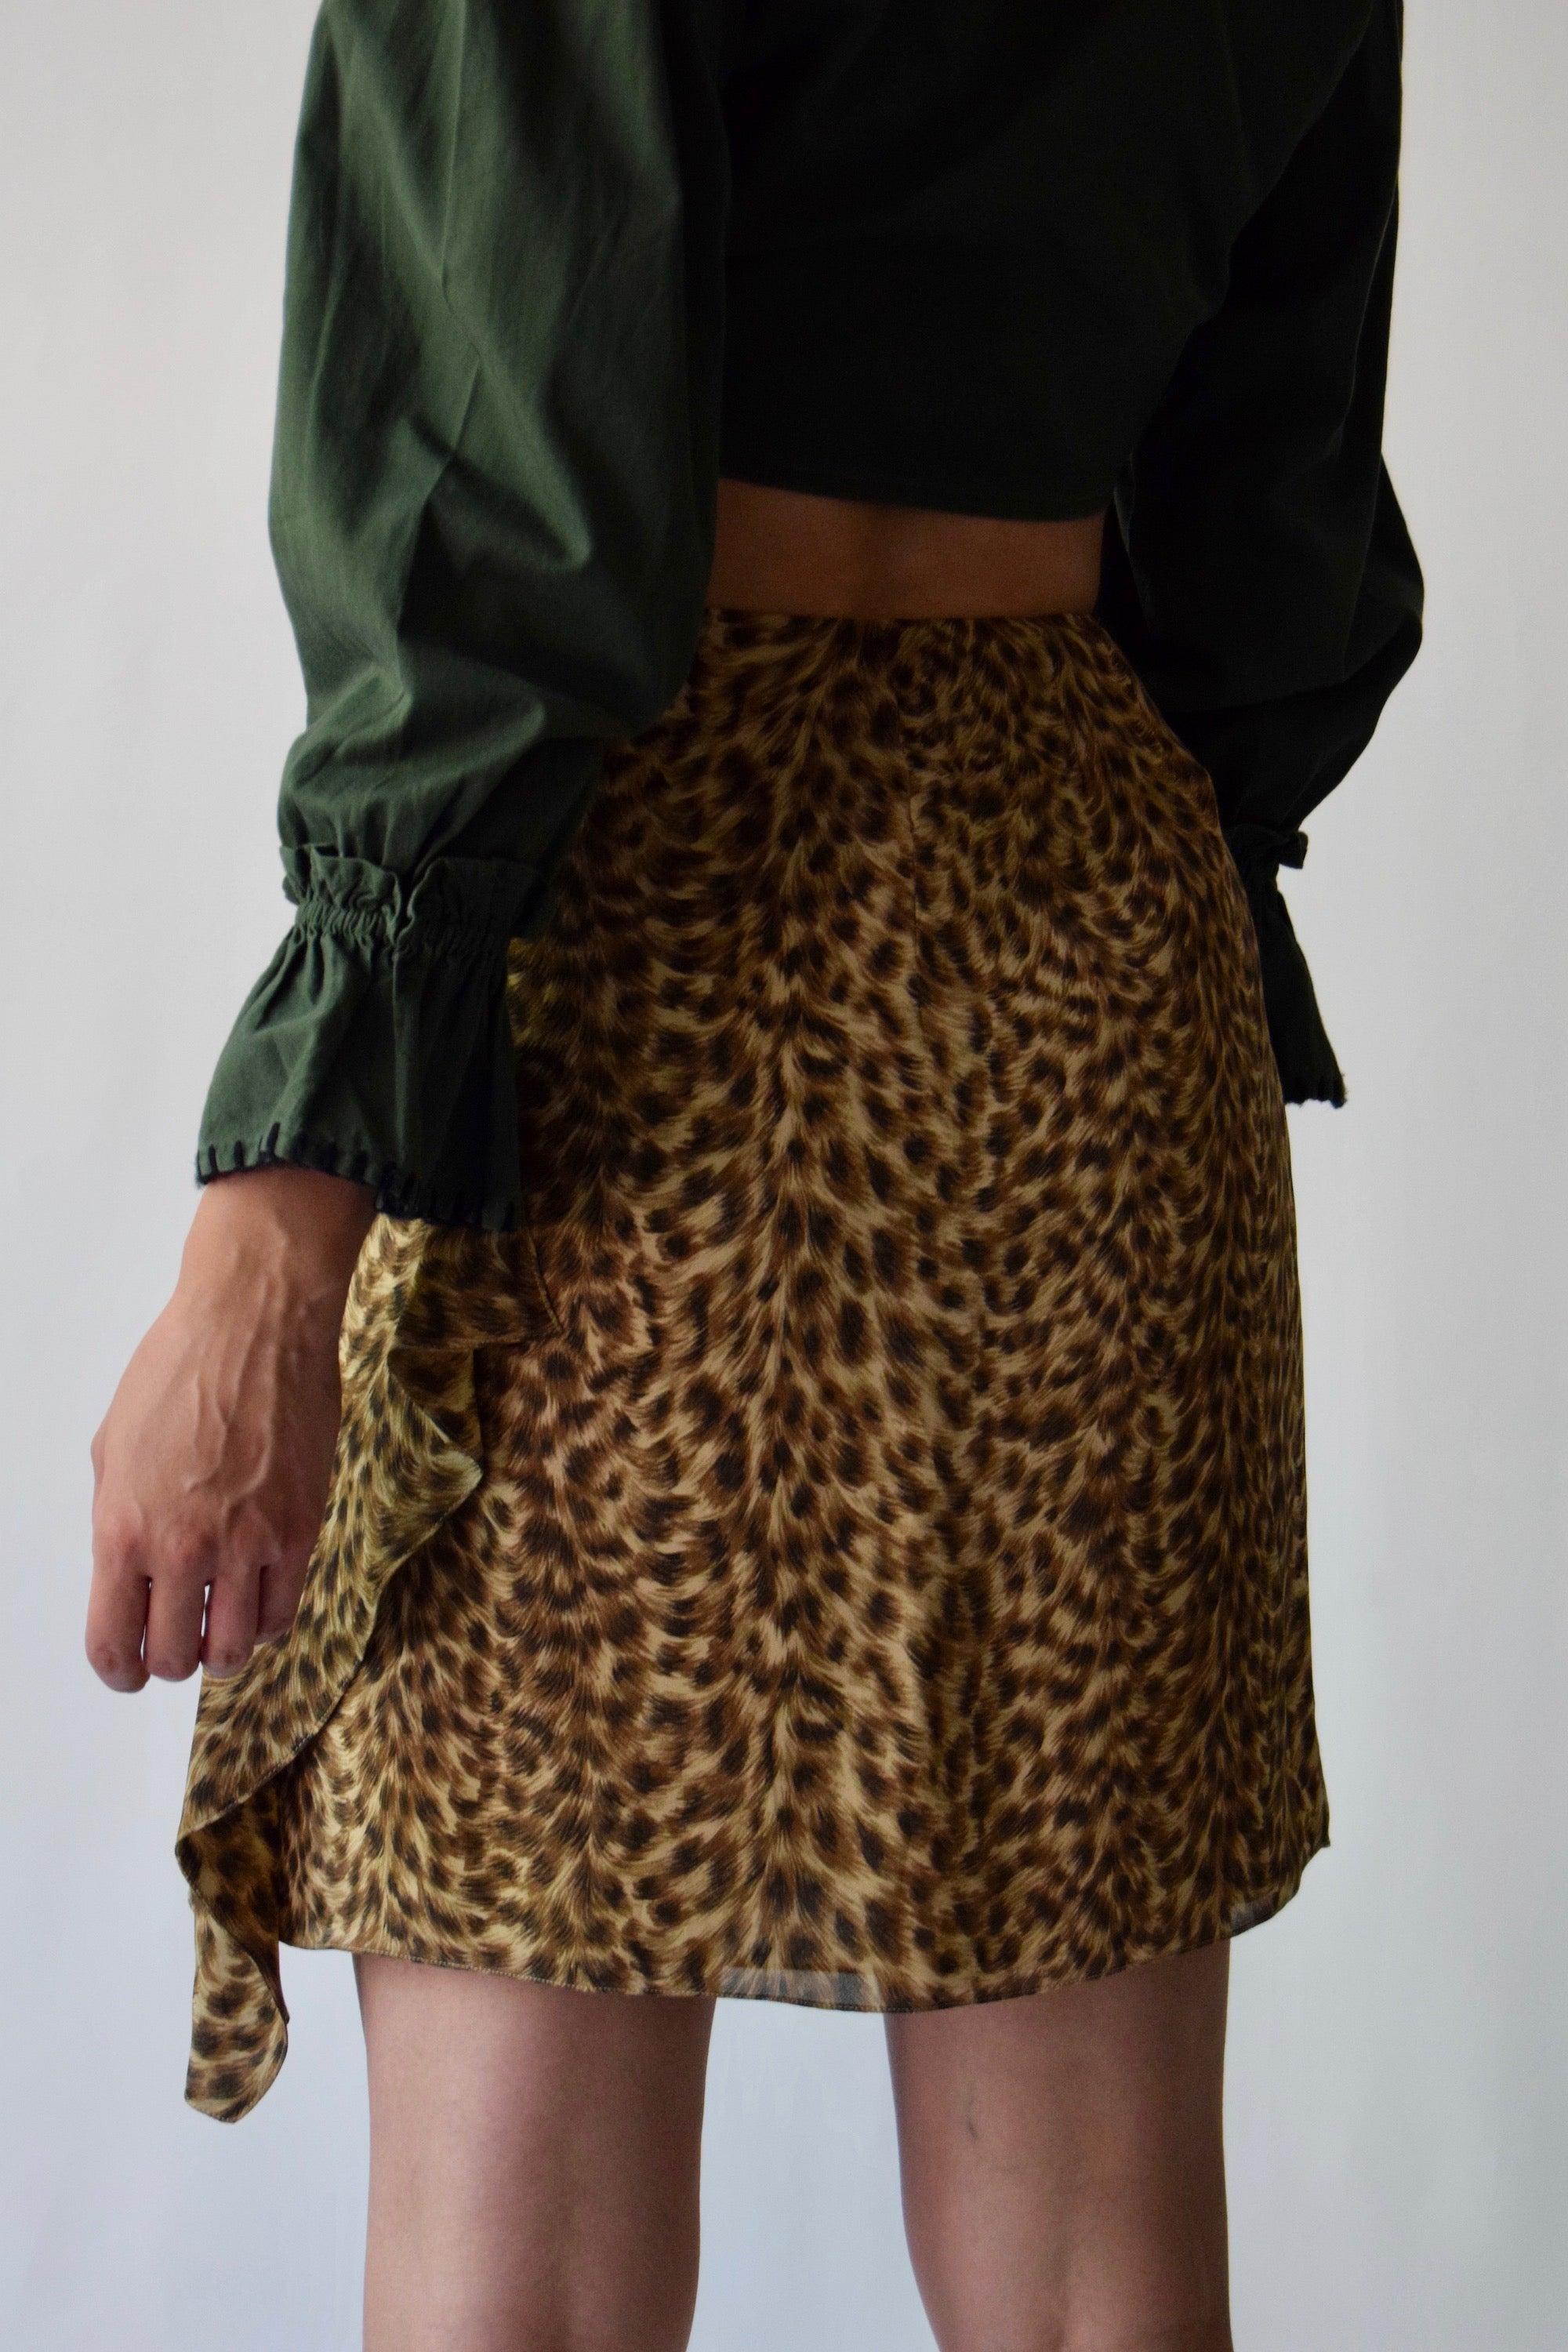 Emanuel Ungaro Silk Cheetah Print Skirt FREE SHIPPING TO THE U.S.